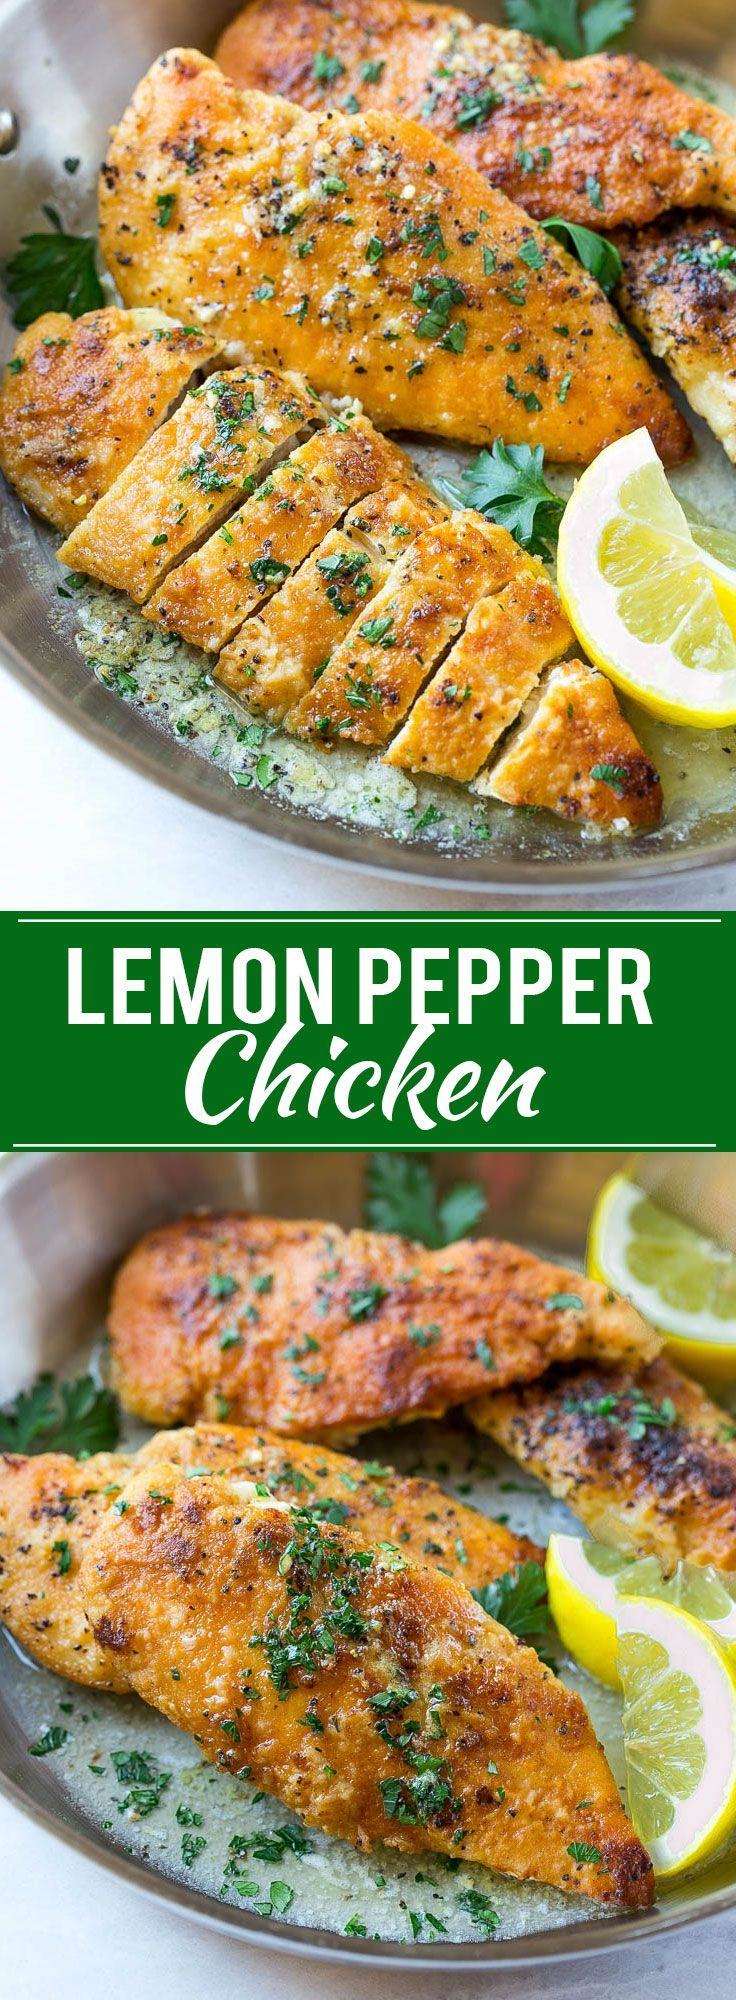 Light easy chicken recipes